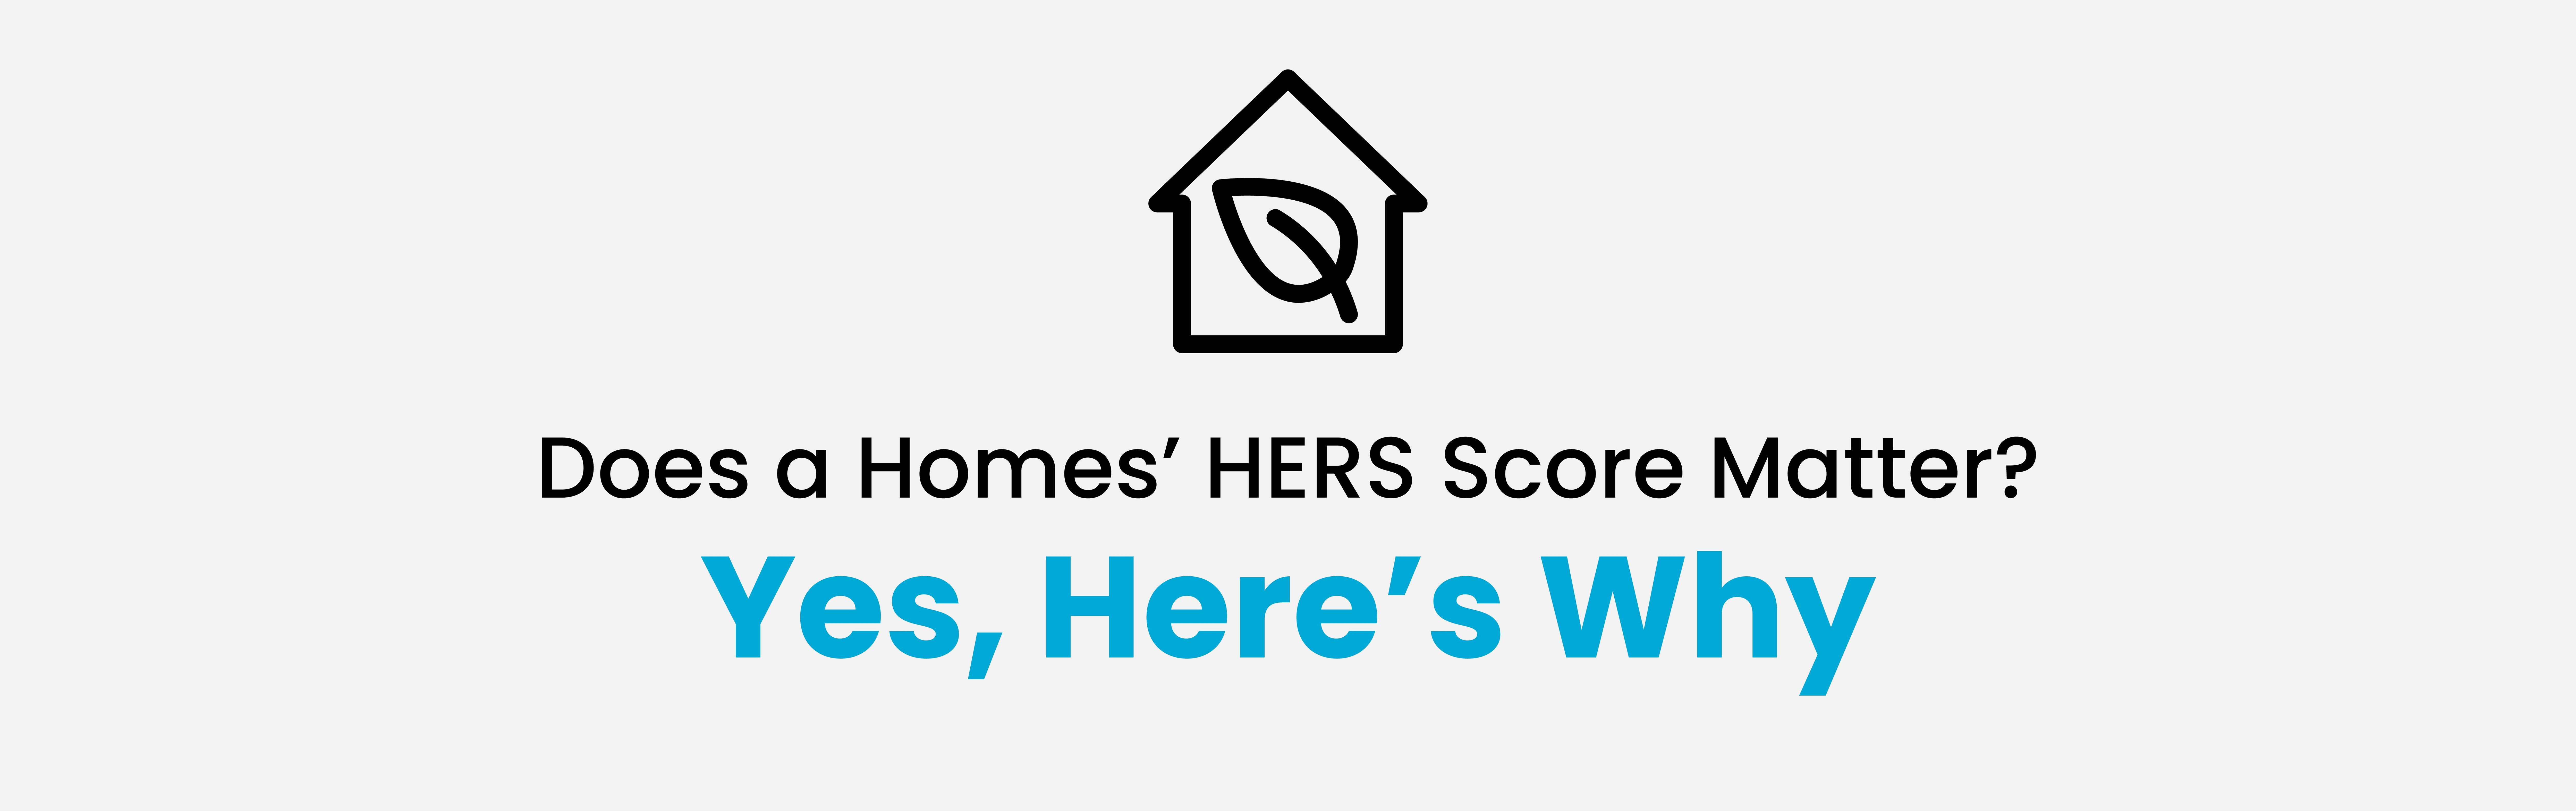 Does a Home's HERS Score Matter?